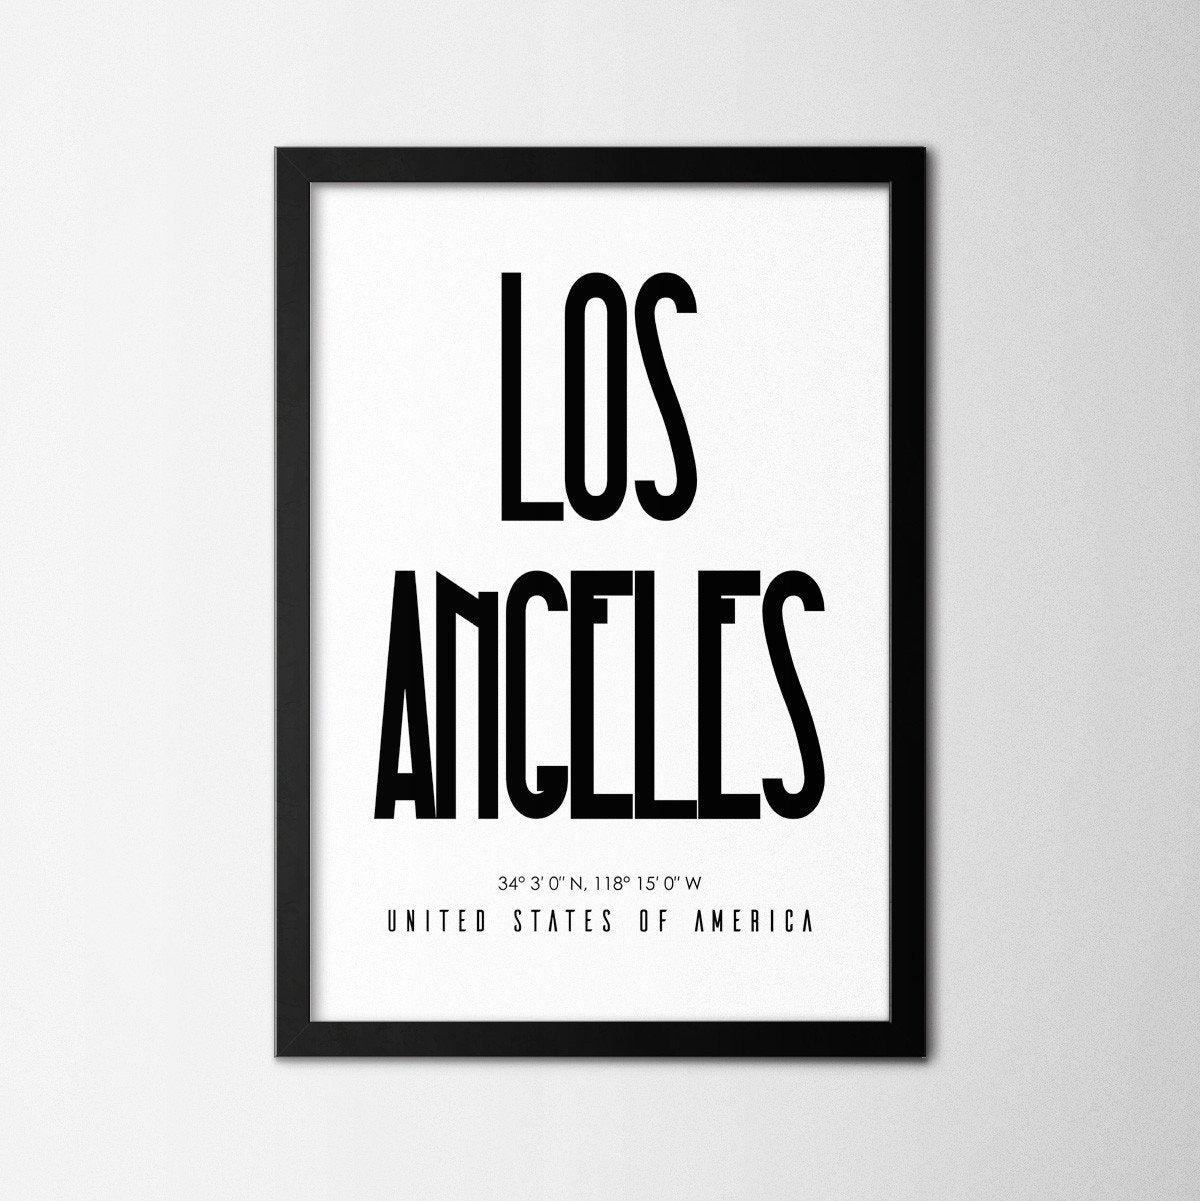 Los Angeles - Northshire Art Prints - Poster - Dekorasyon